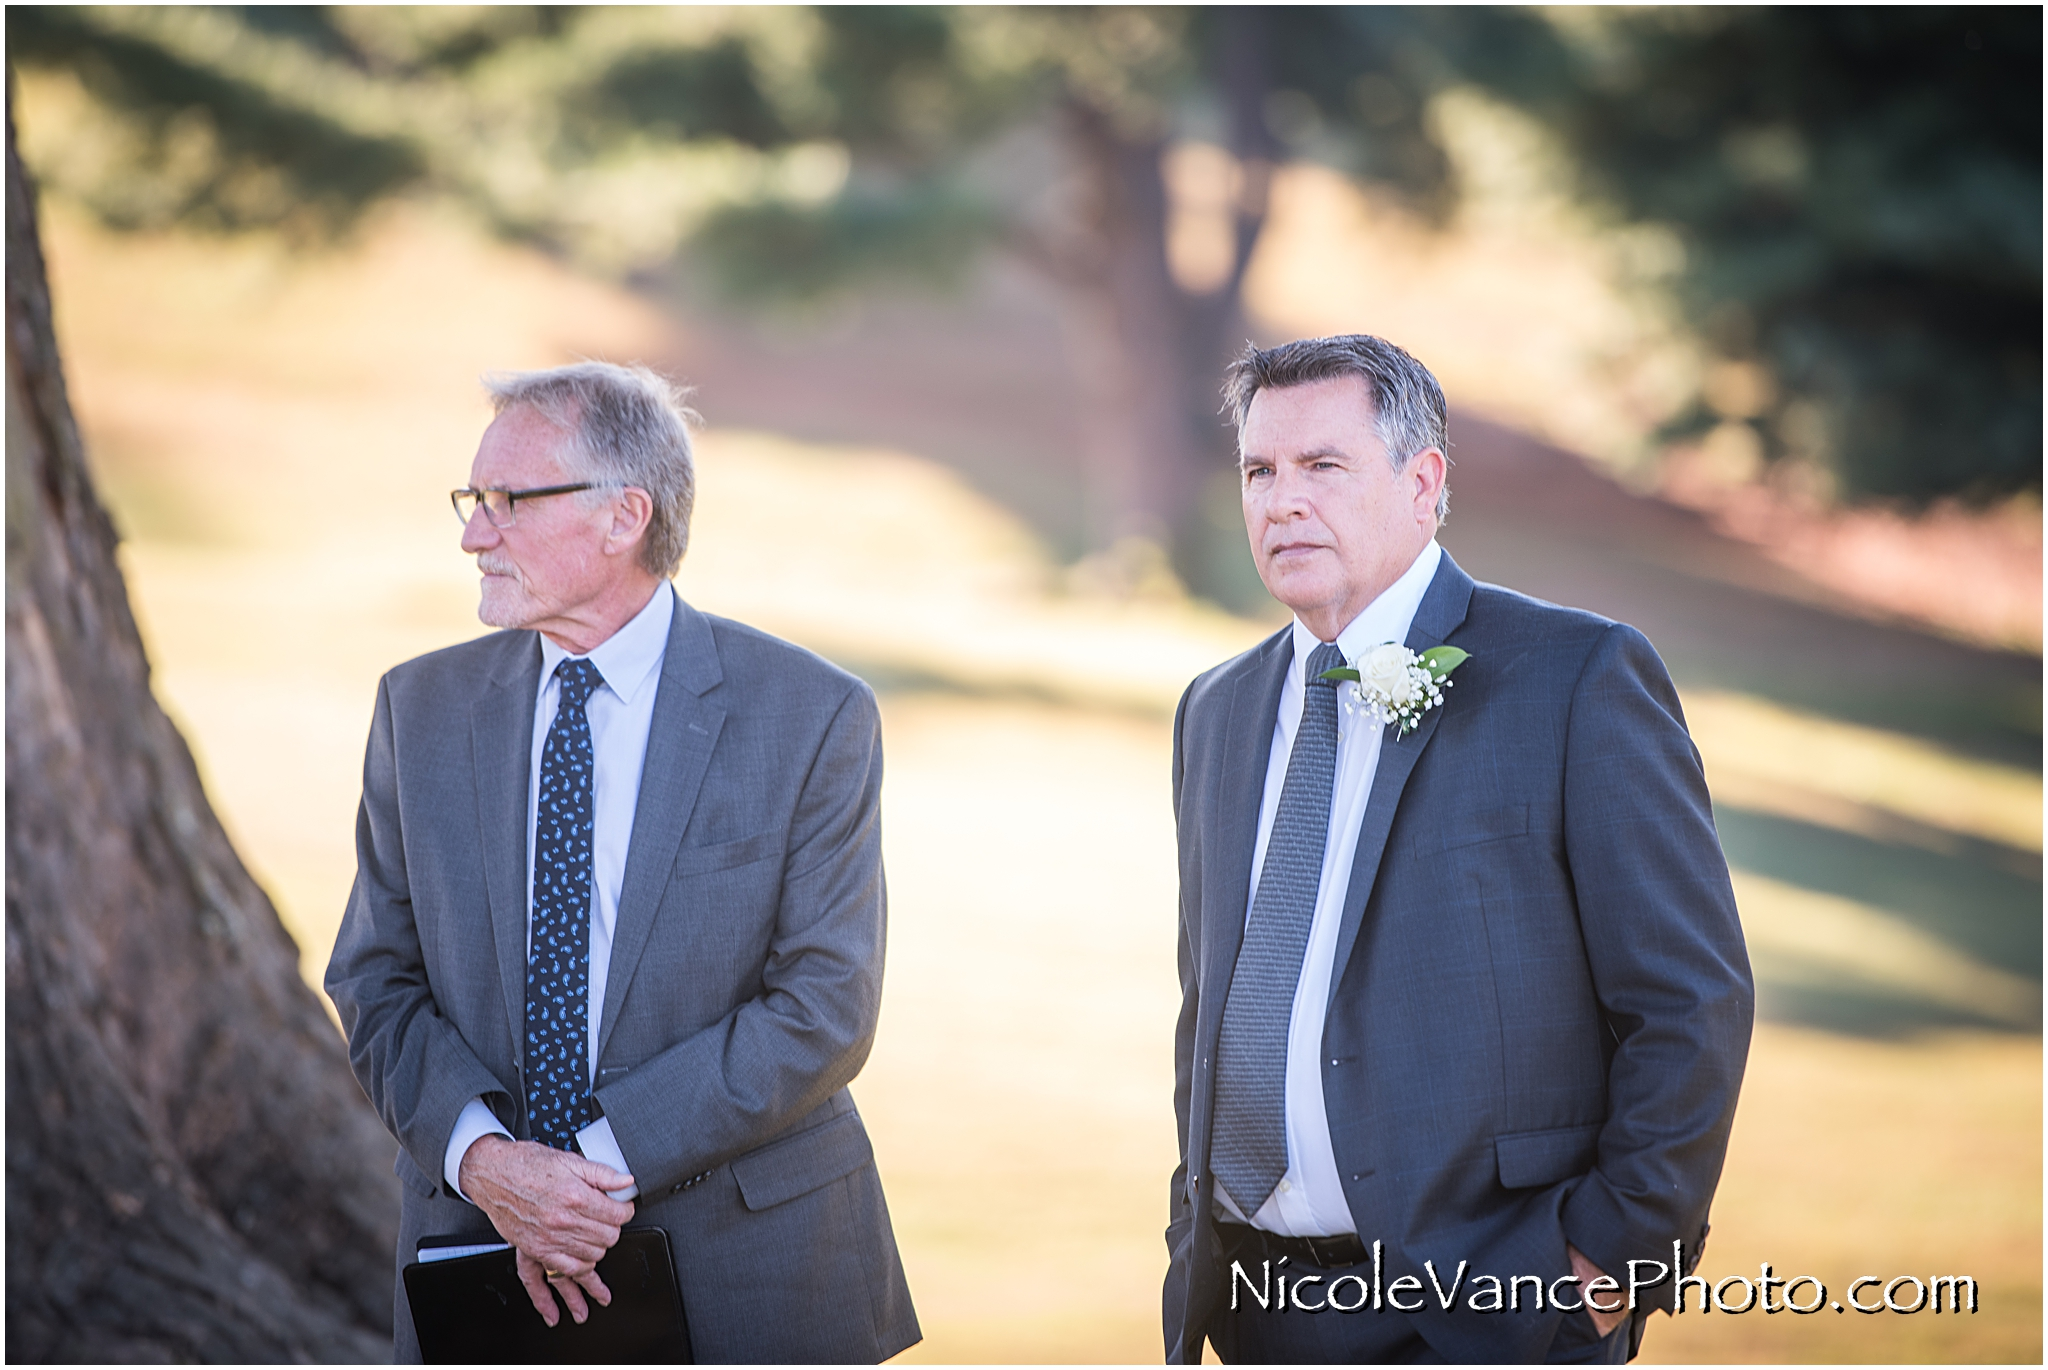 The groom watches as the horse drawn carriage arrives at their Maymont Park wedding ceremony.